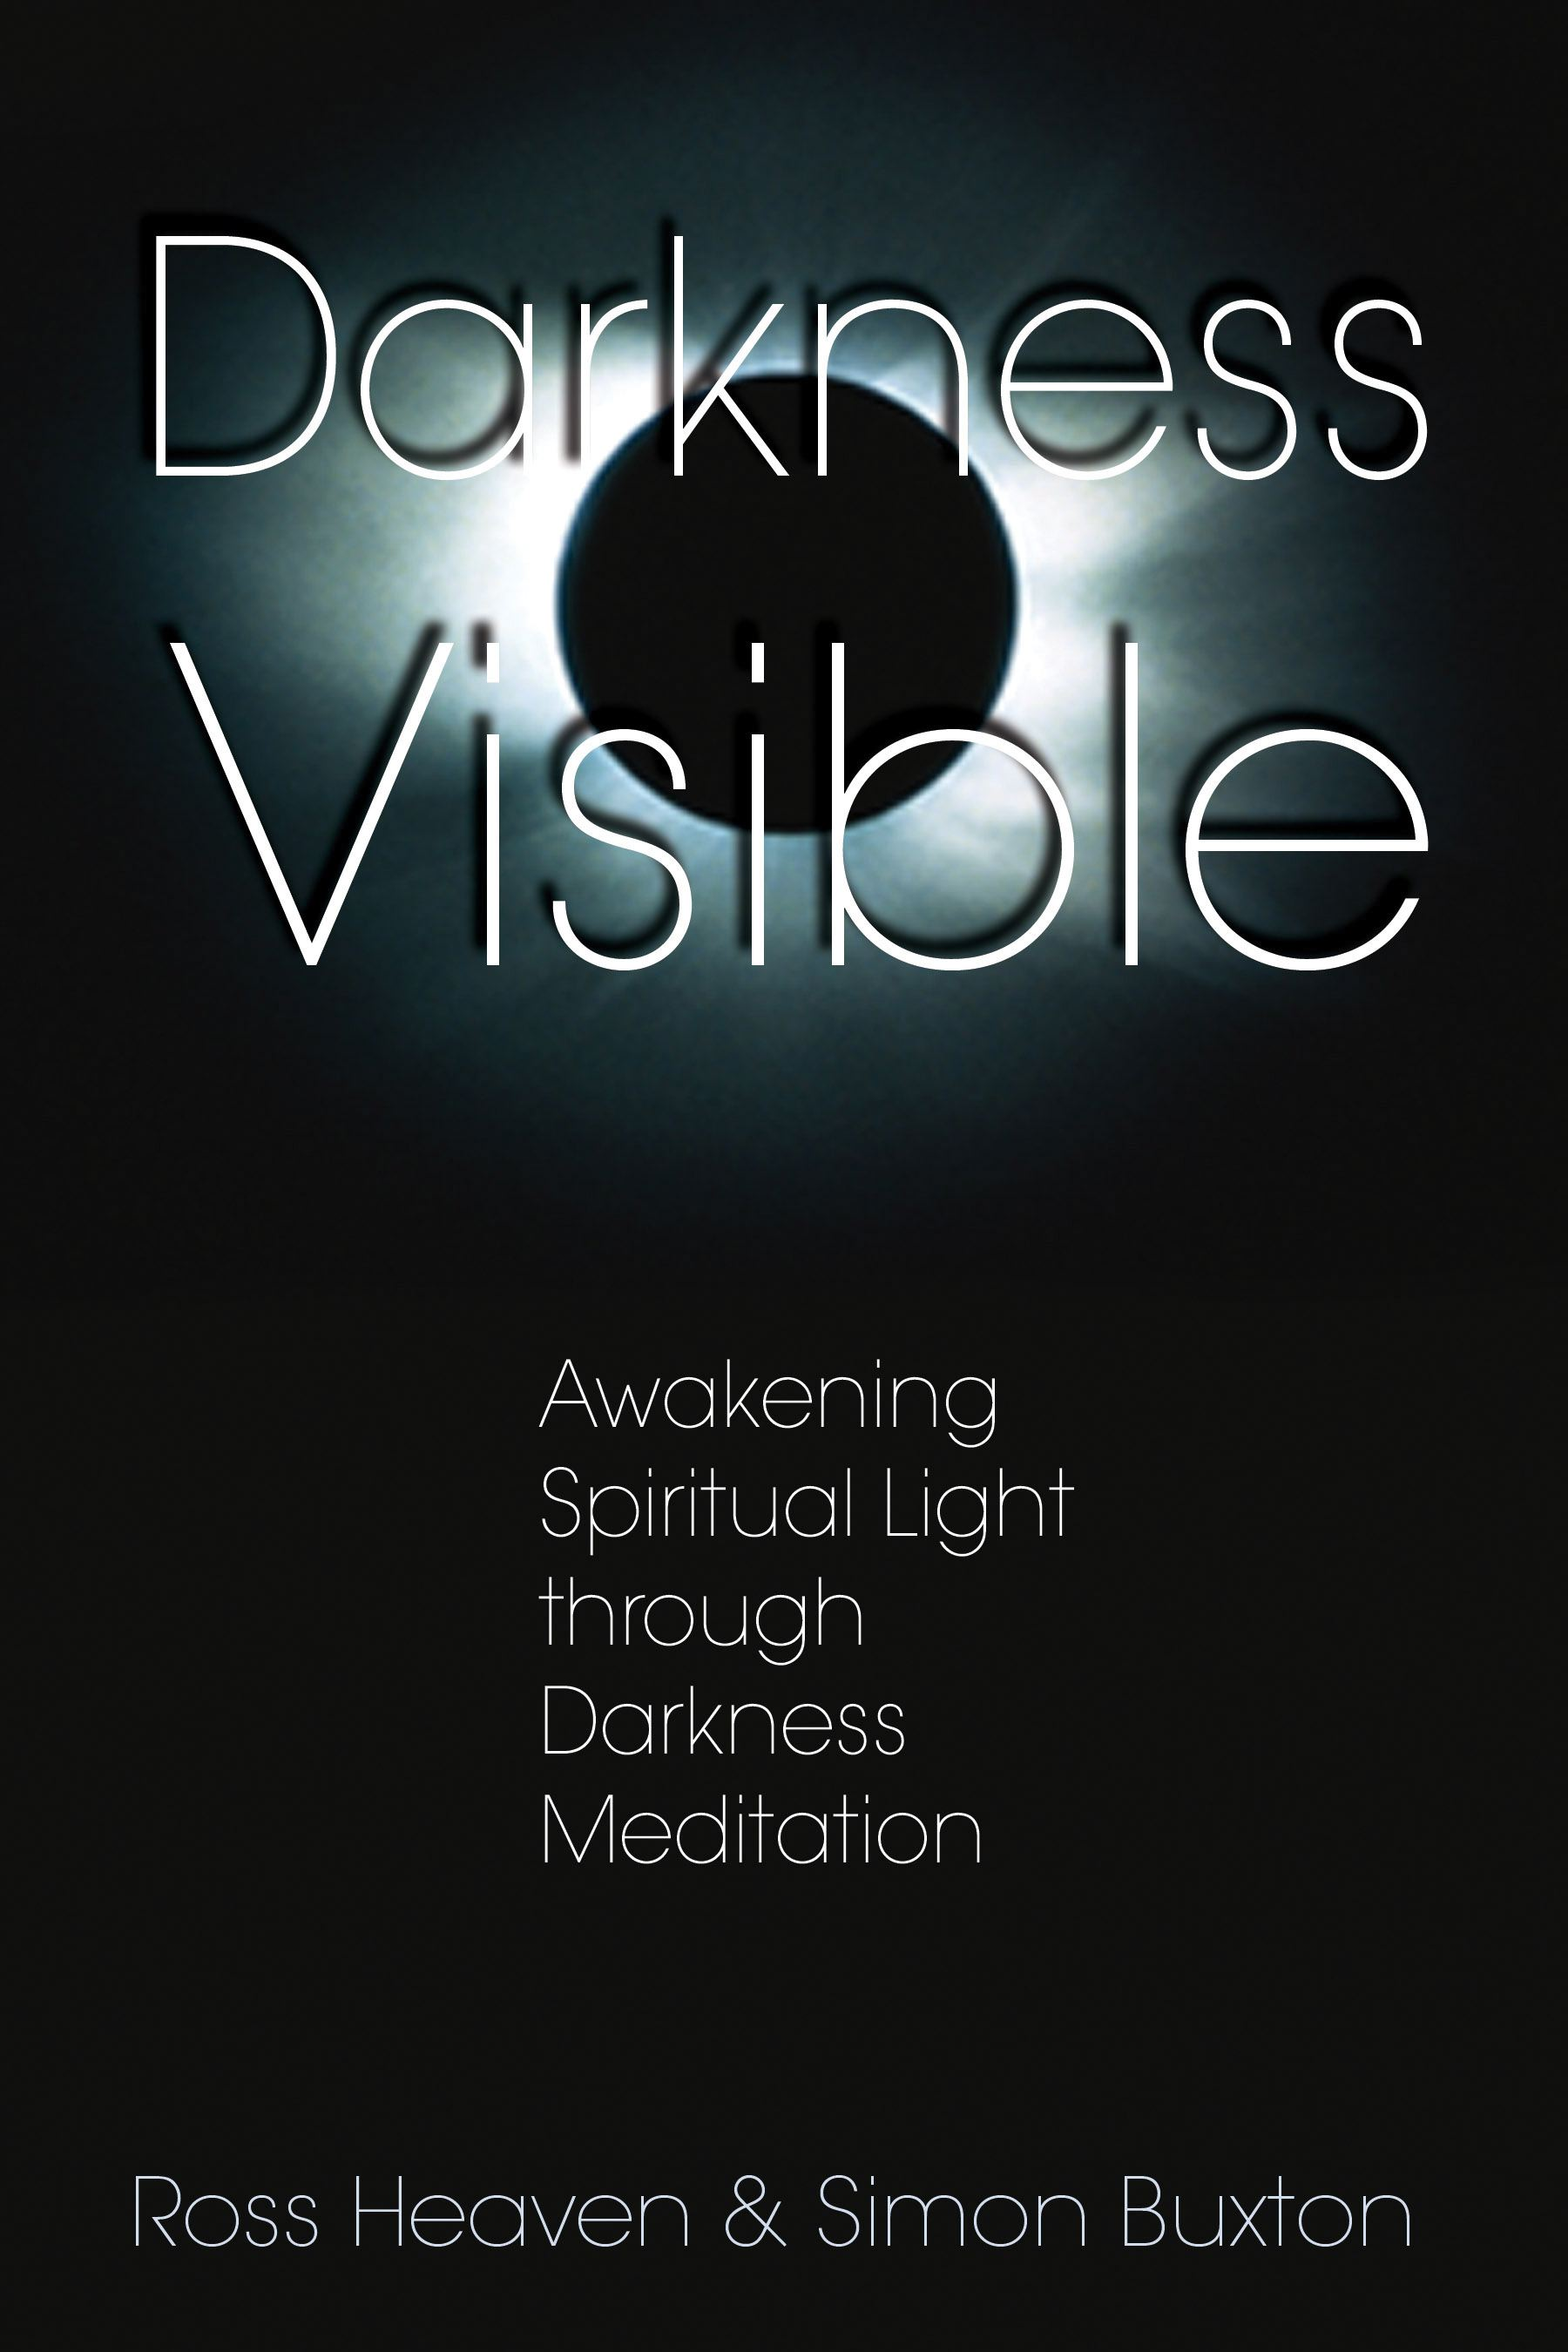 Darkness visible 9781594770616 hr